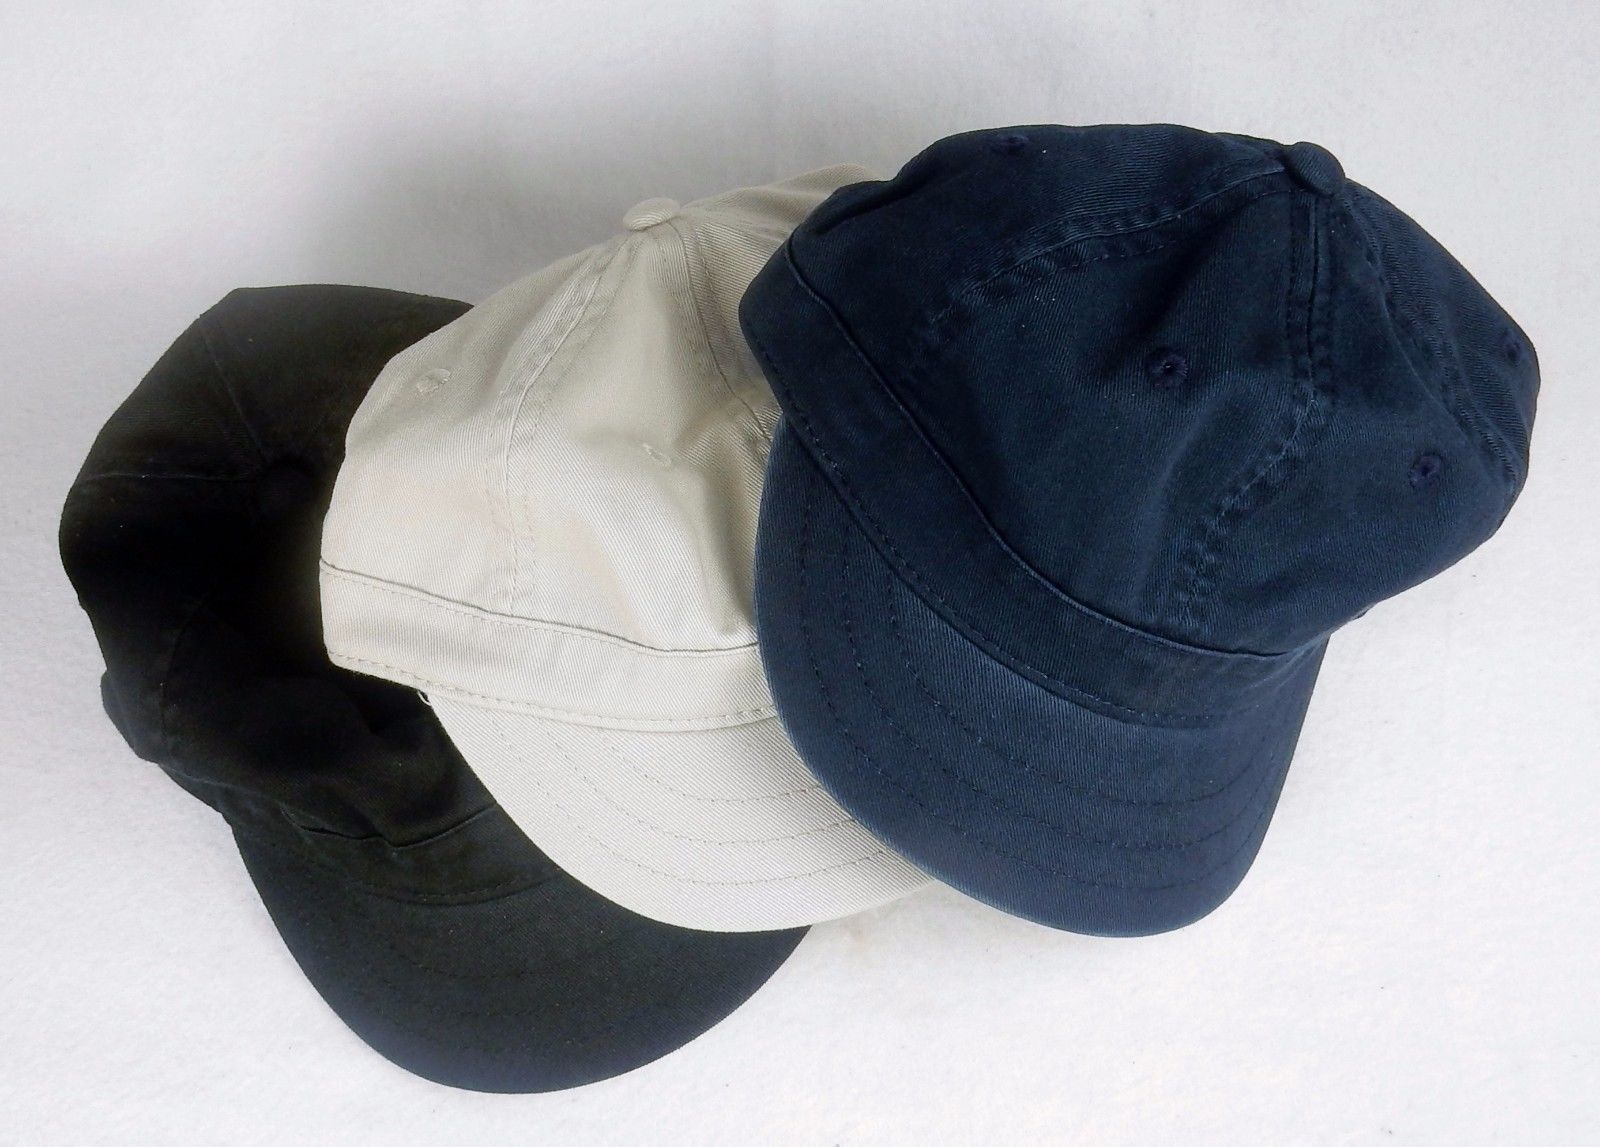 Primary image for 6 Panel Cotton Twill Ball Cap ~ Shortie Curved Bill ~ Black/Stone/Navy ~ #BA500